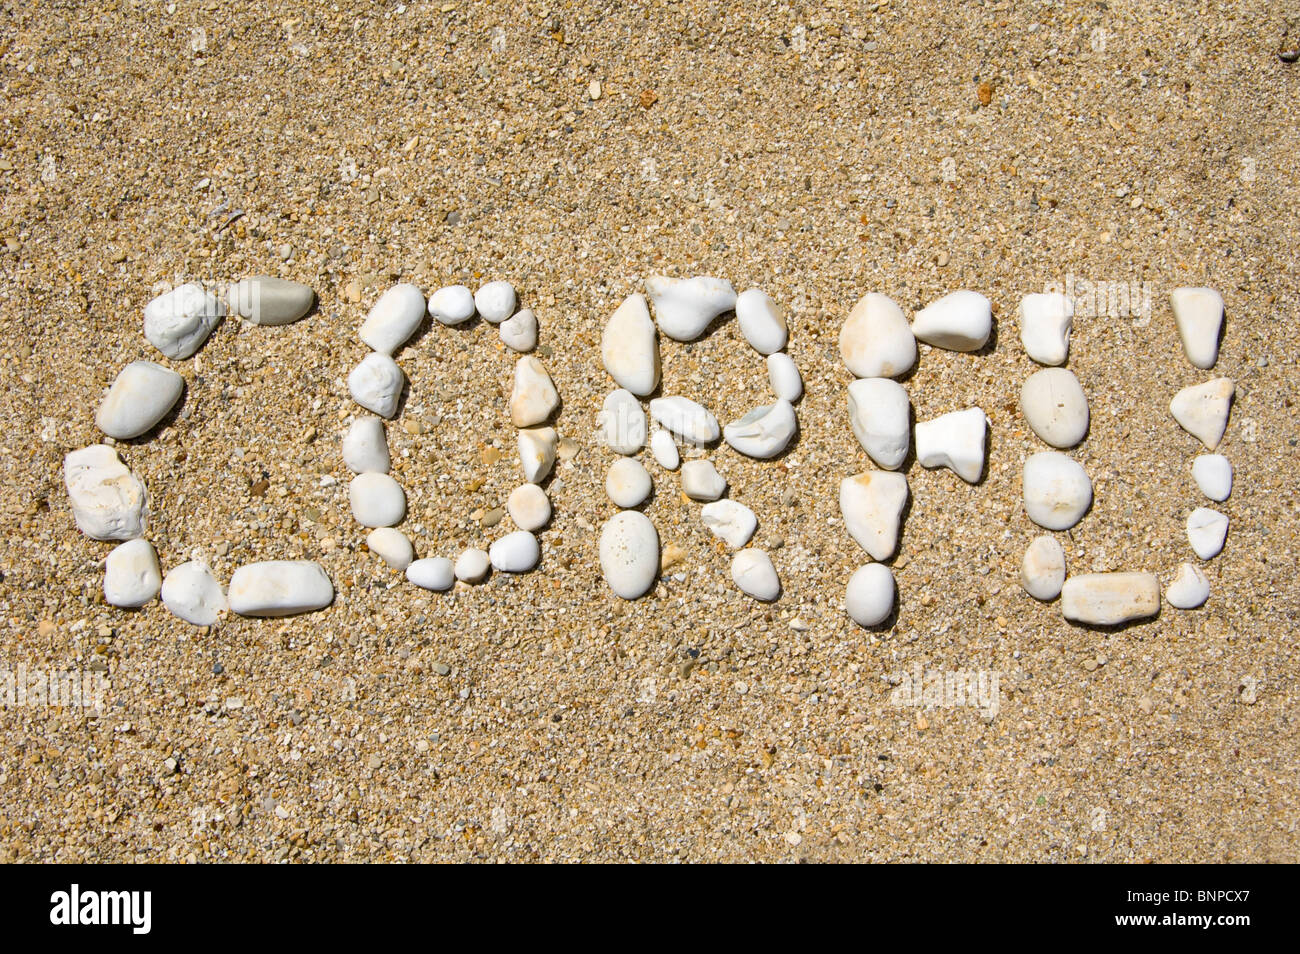 CORFU spelled out in pebbles on a beach at Kassiopi on the Greek Mediterranean island of Corfu Greece GR - Stock Image